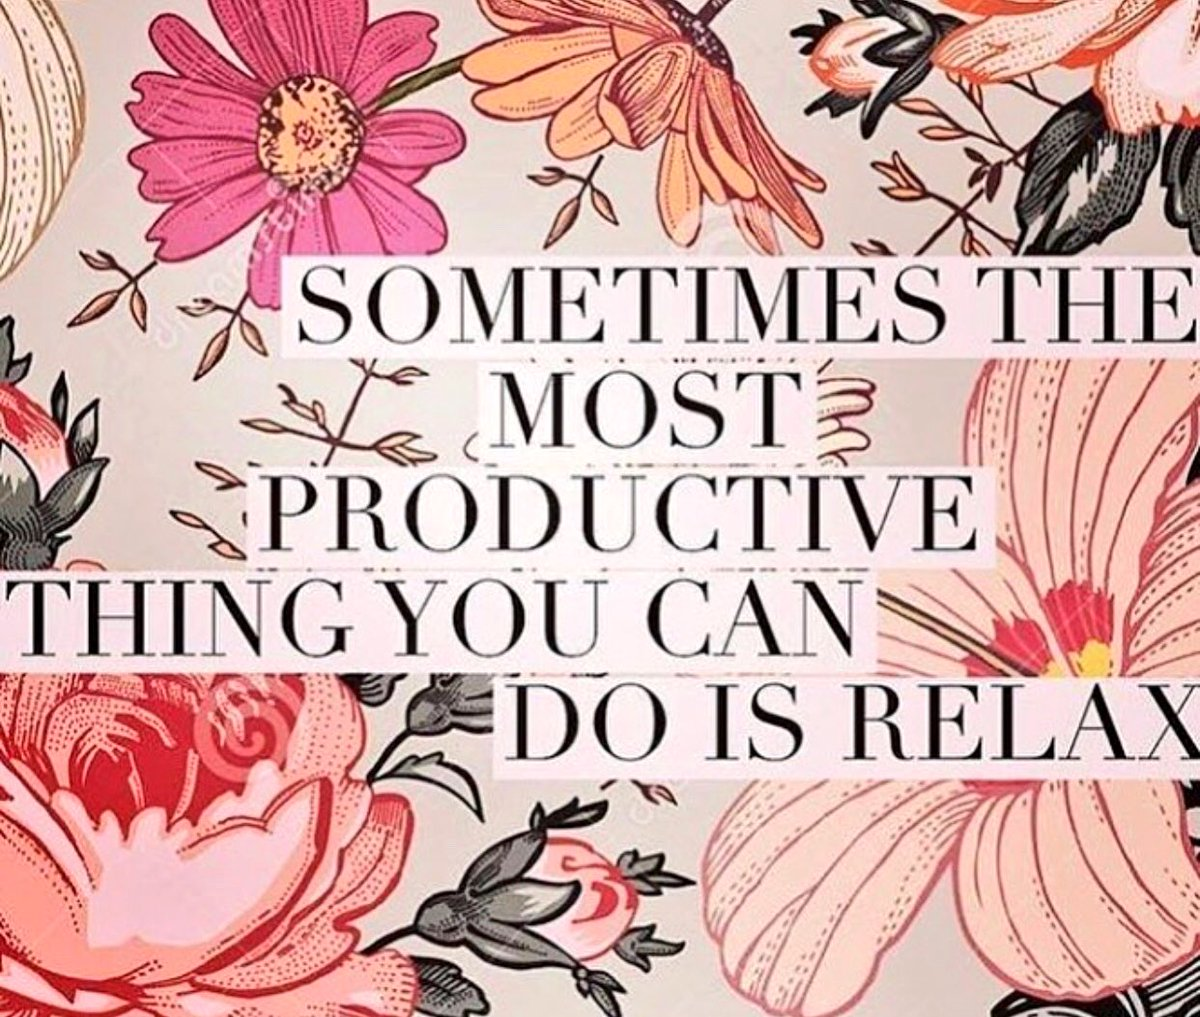 Saturday Friendly Reminder...Sometimes the most productive thing you can do is relax  Take time to enjoy the simple things  #SaturdayMorning #weekendvibes #chillax<br>http://pic.twitter.com/puAm5edlN7